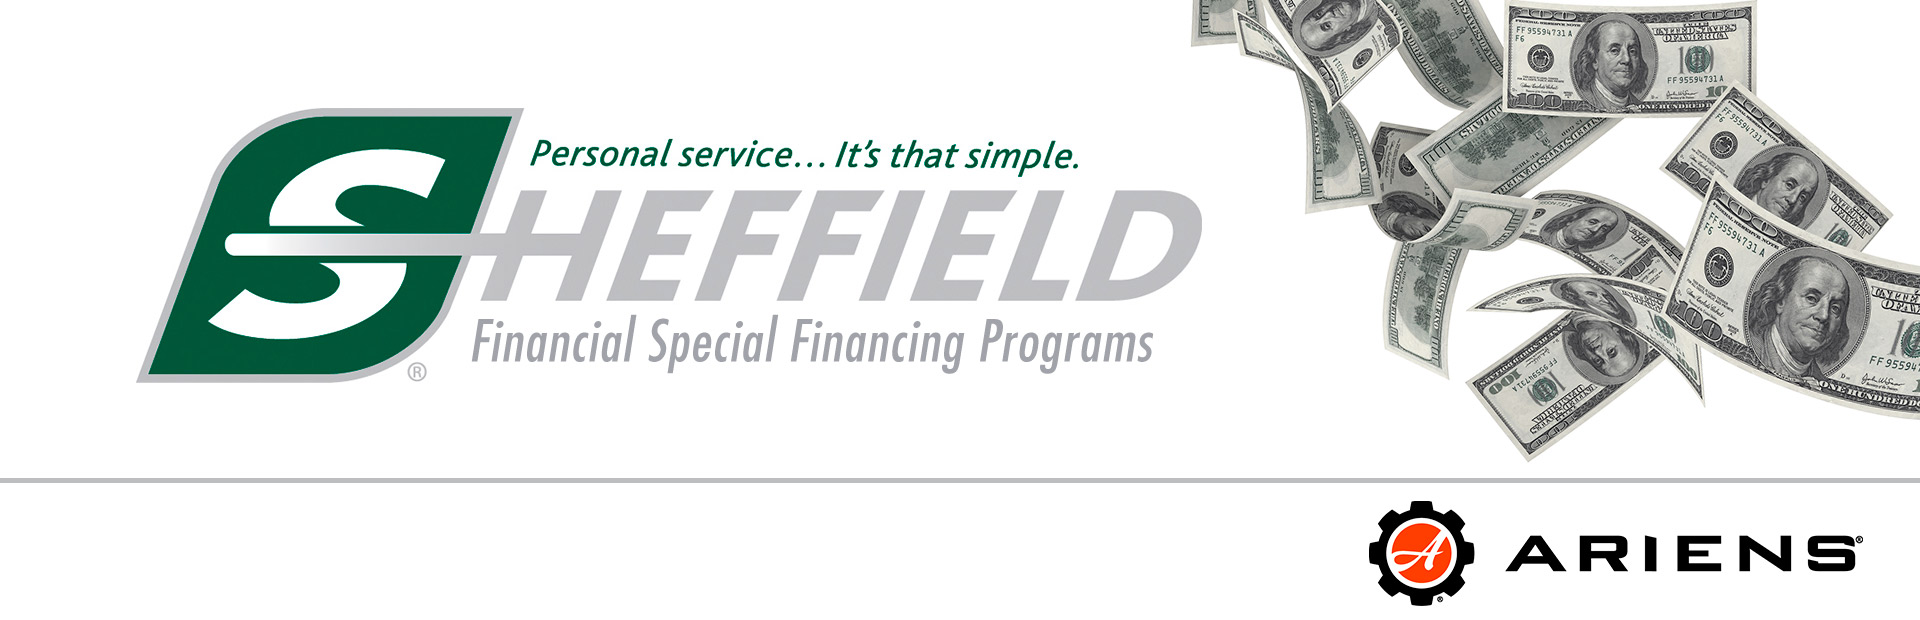 Ariens: Sheffield Financing